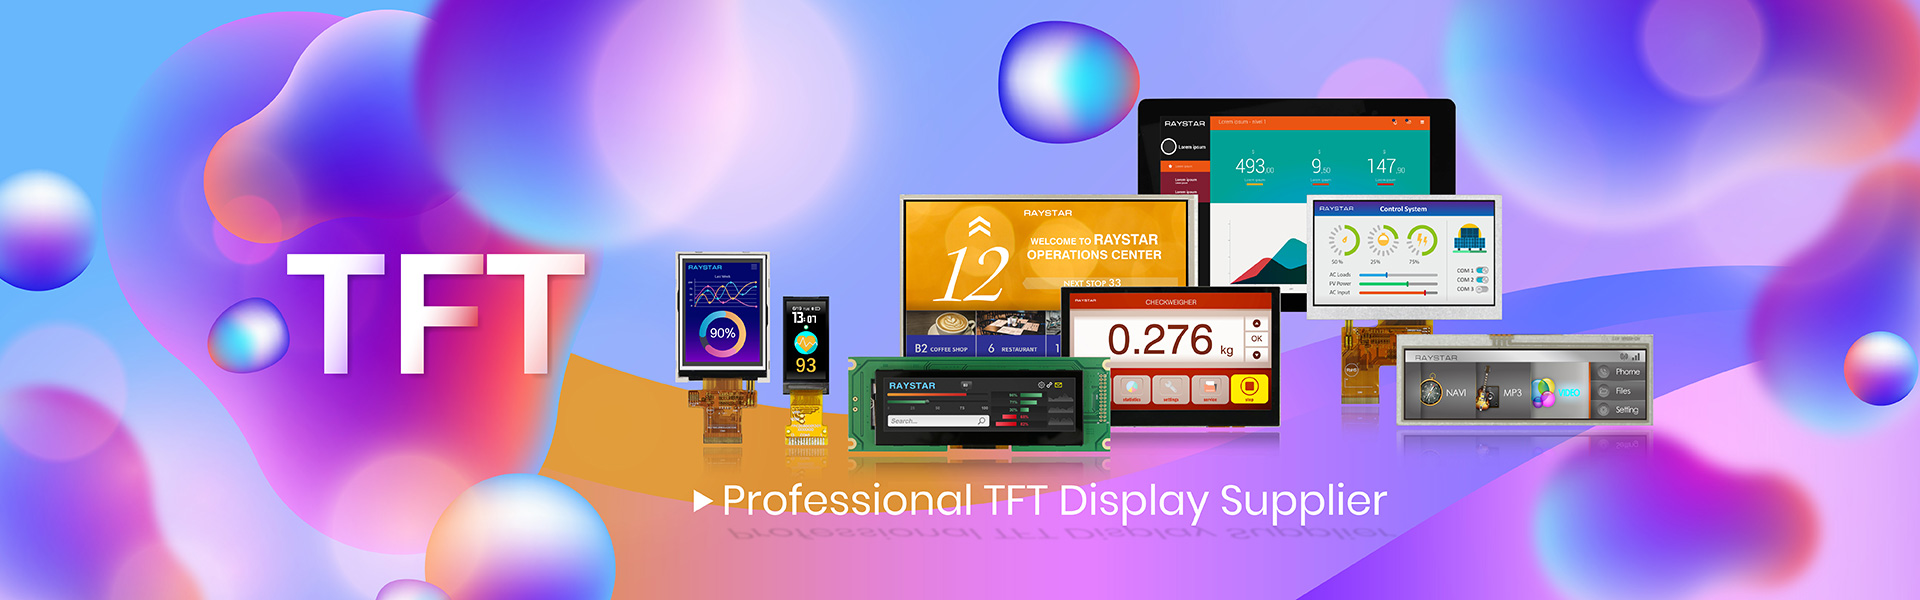 TFT LCD Display, TFT Active Matrix Display, TFT LCD Module Manufacturers